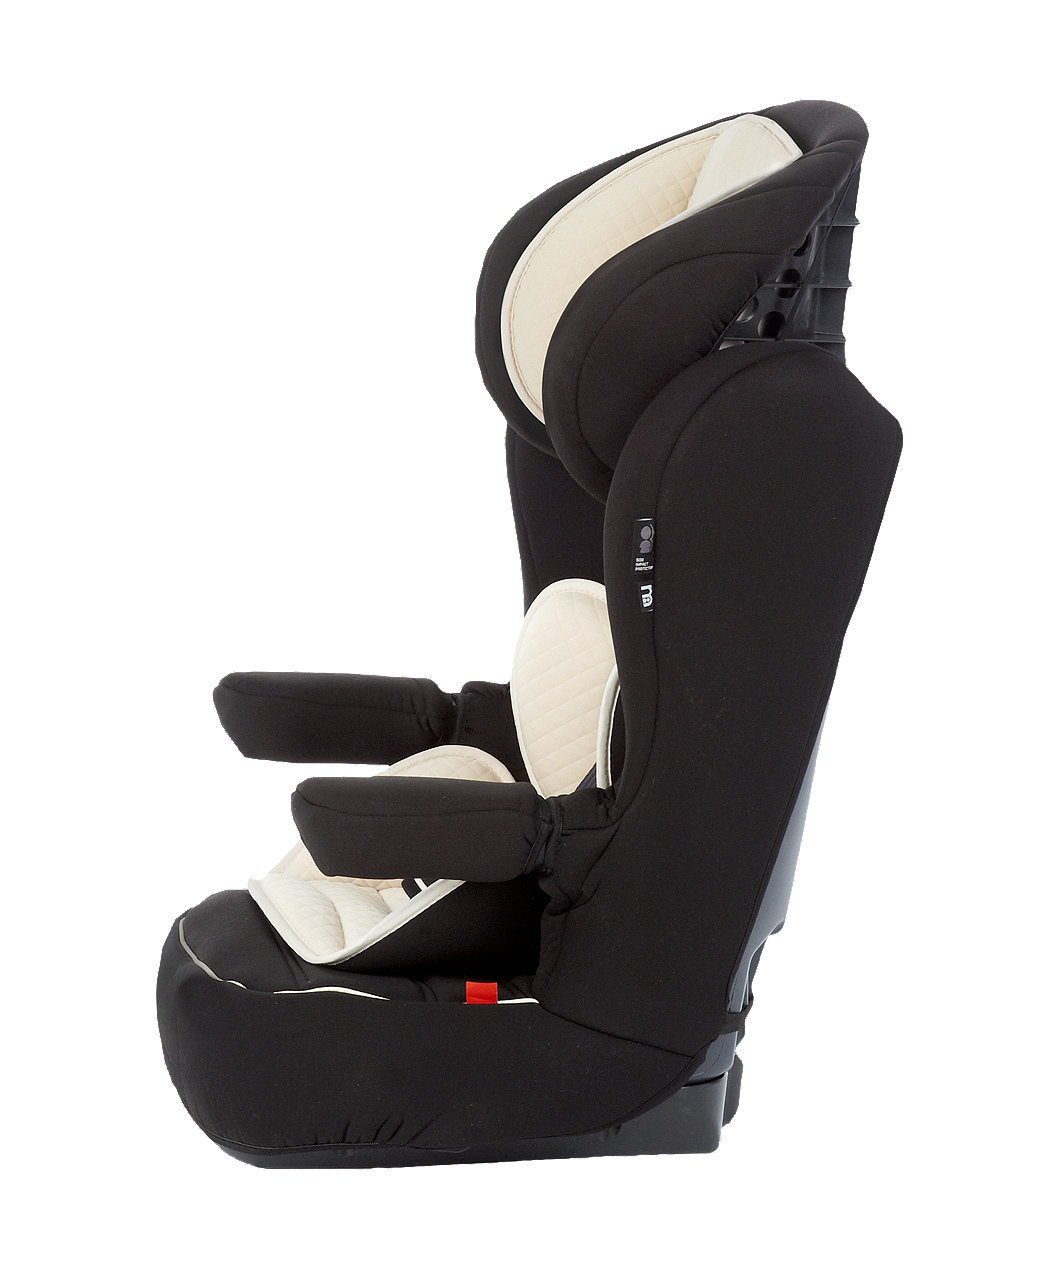 Reclining High Back Booster Car Seat